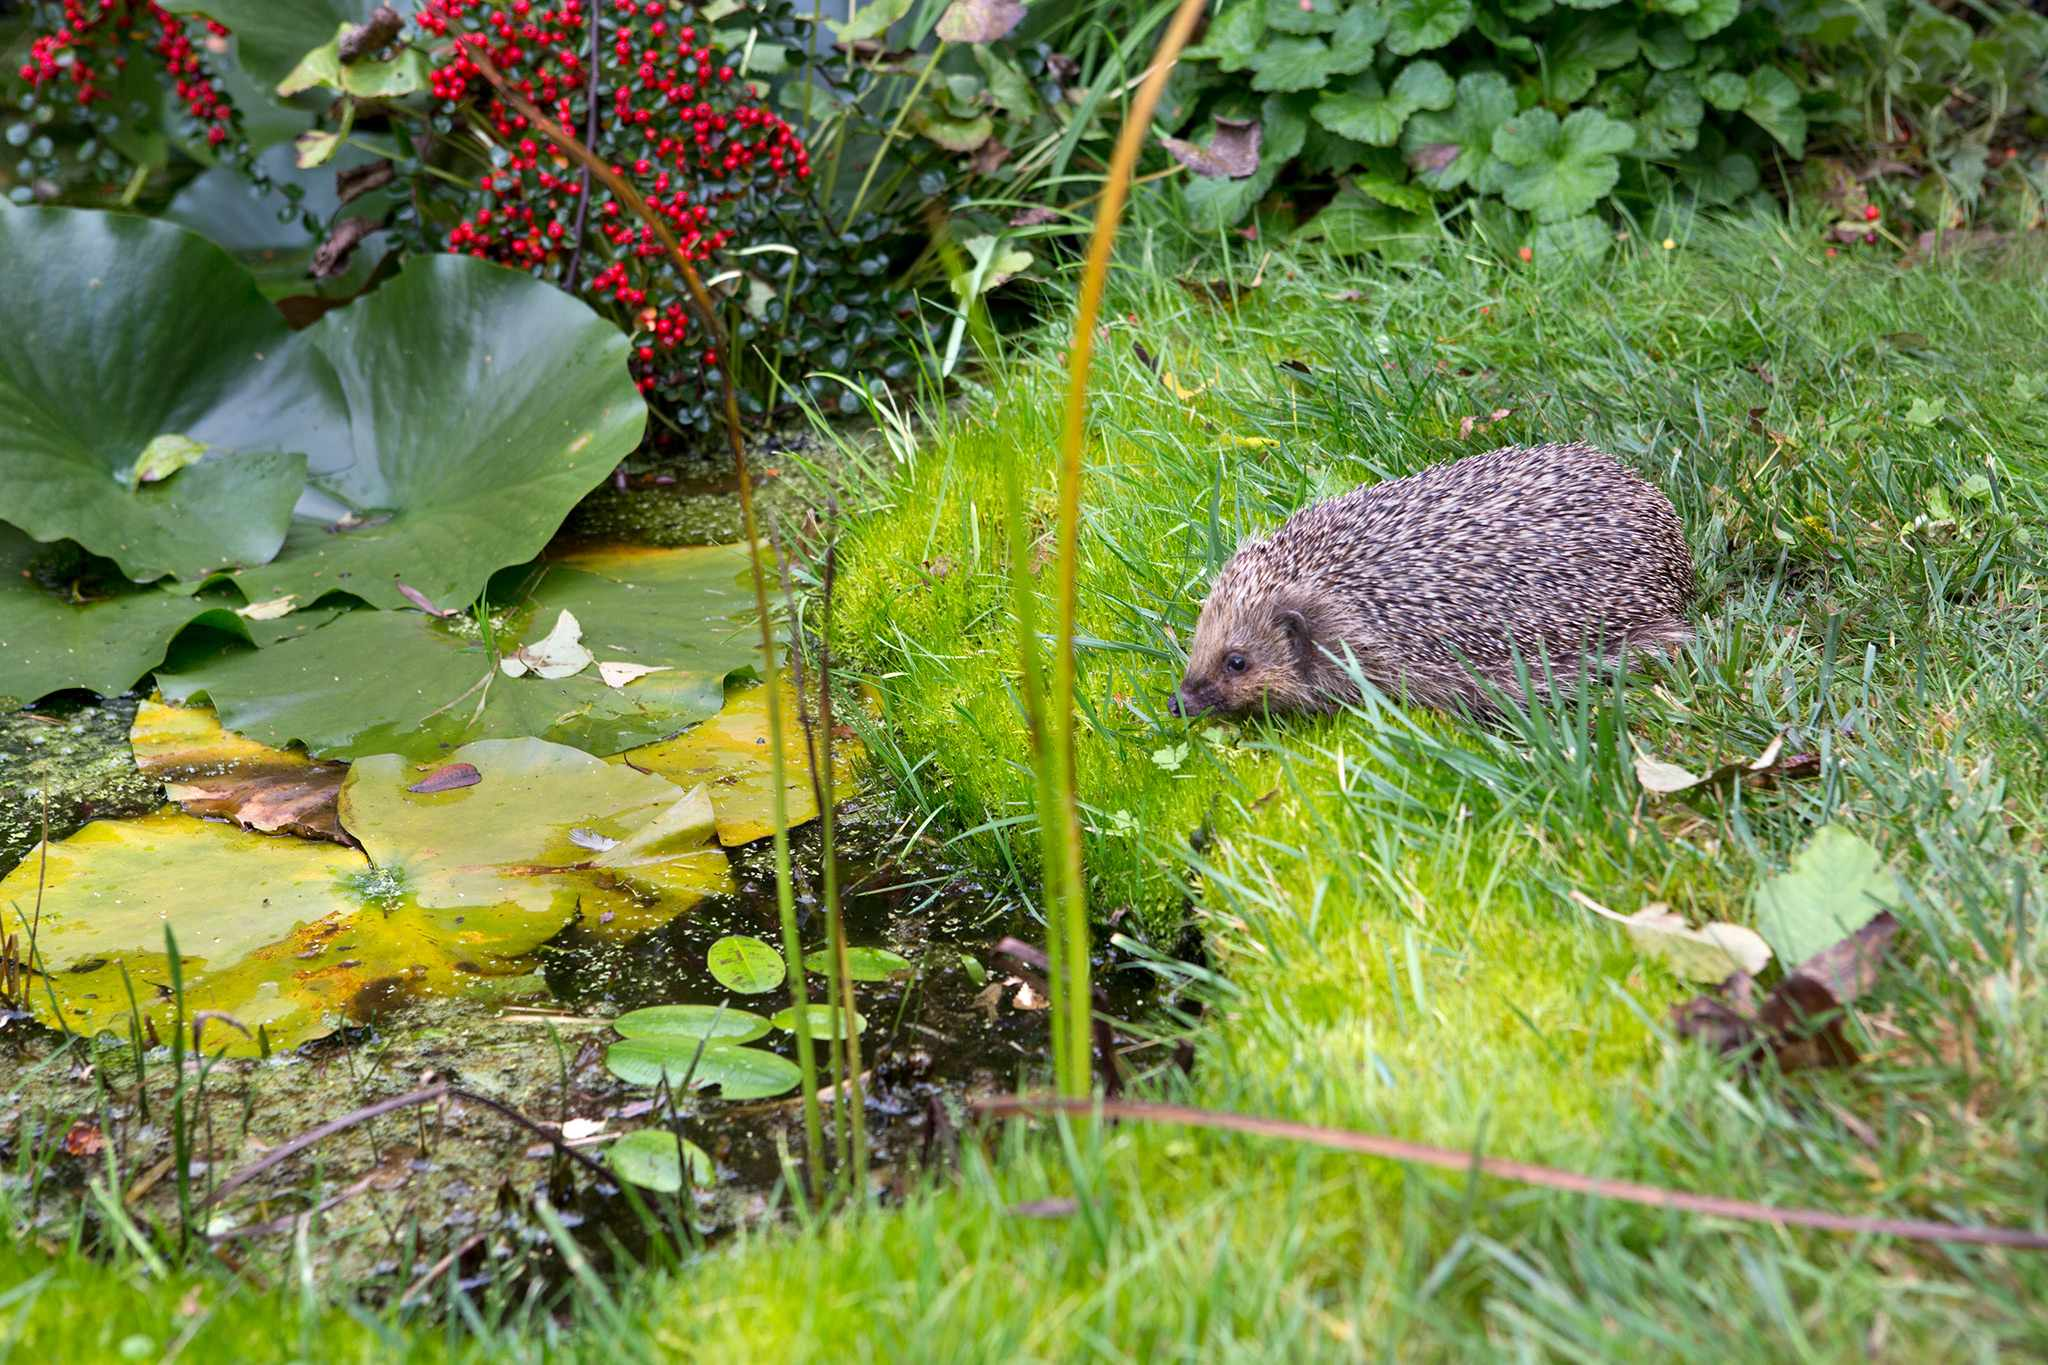 Hedgehog near a pond